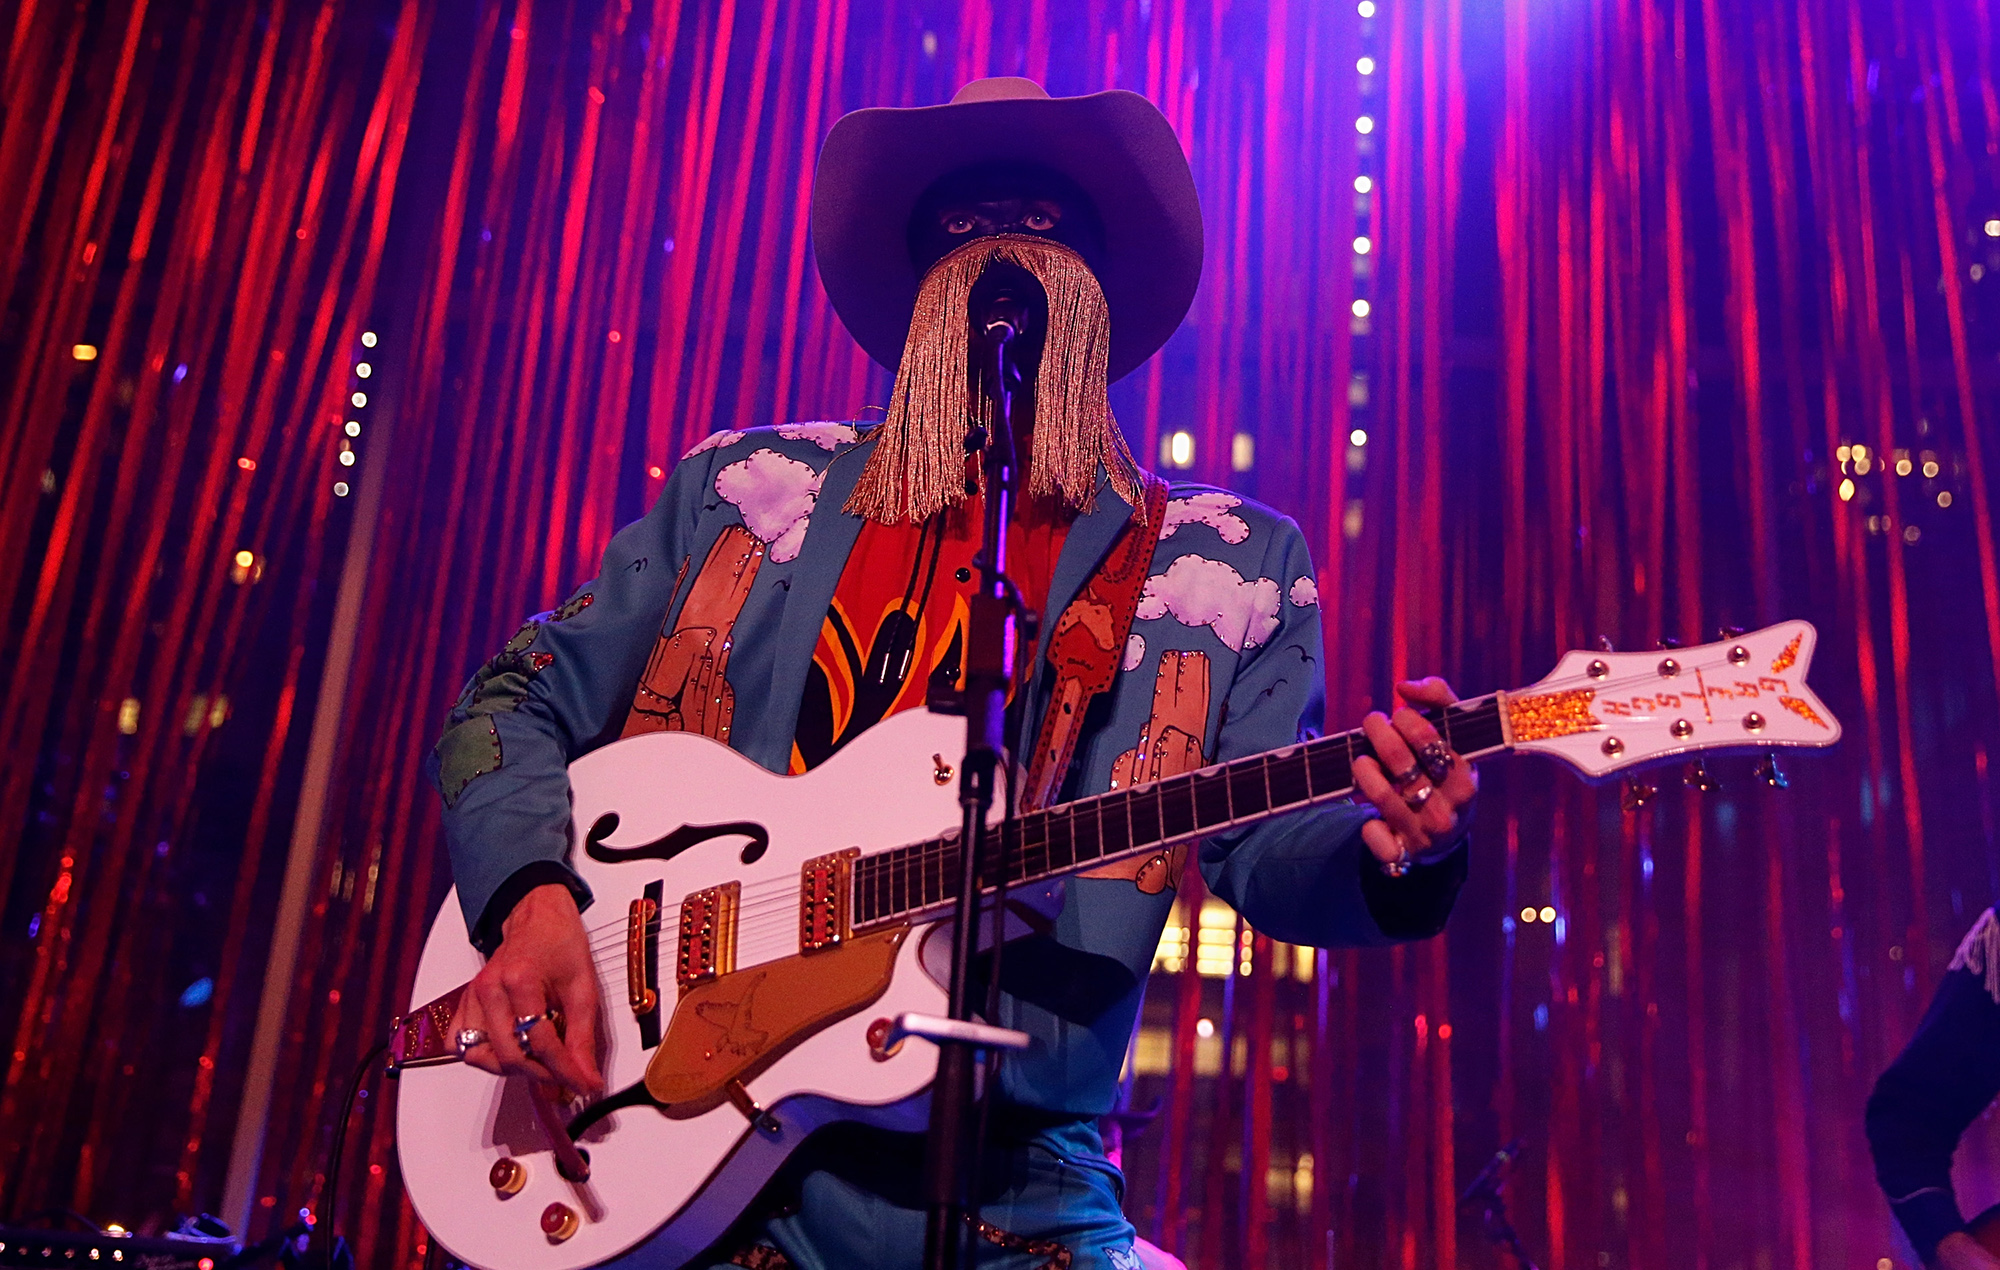 Orville Peck teases new song coming this week   NME